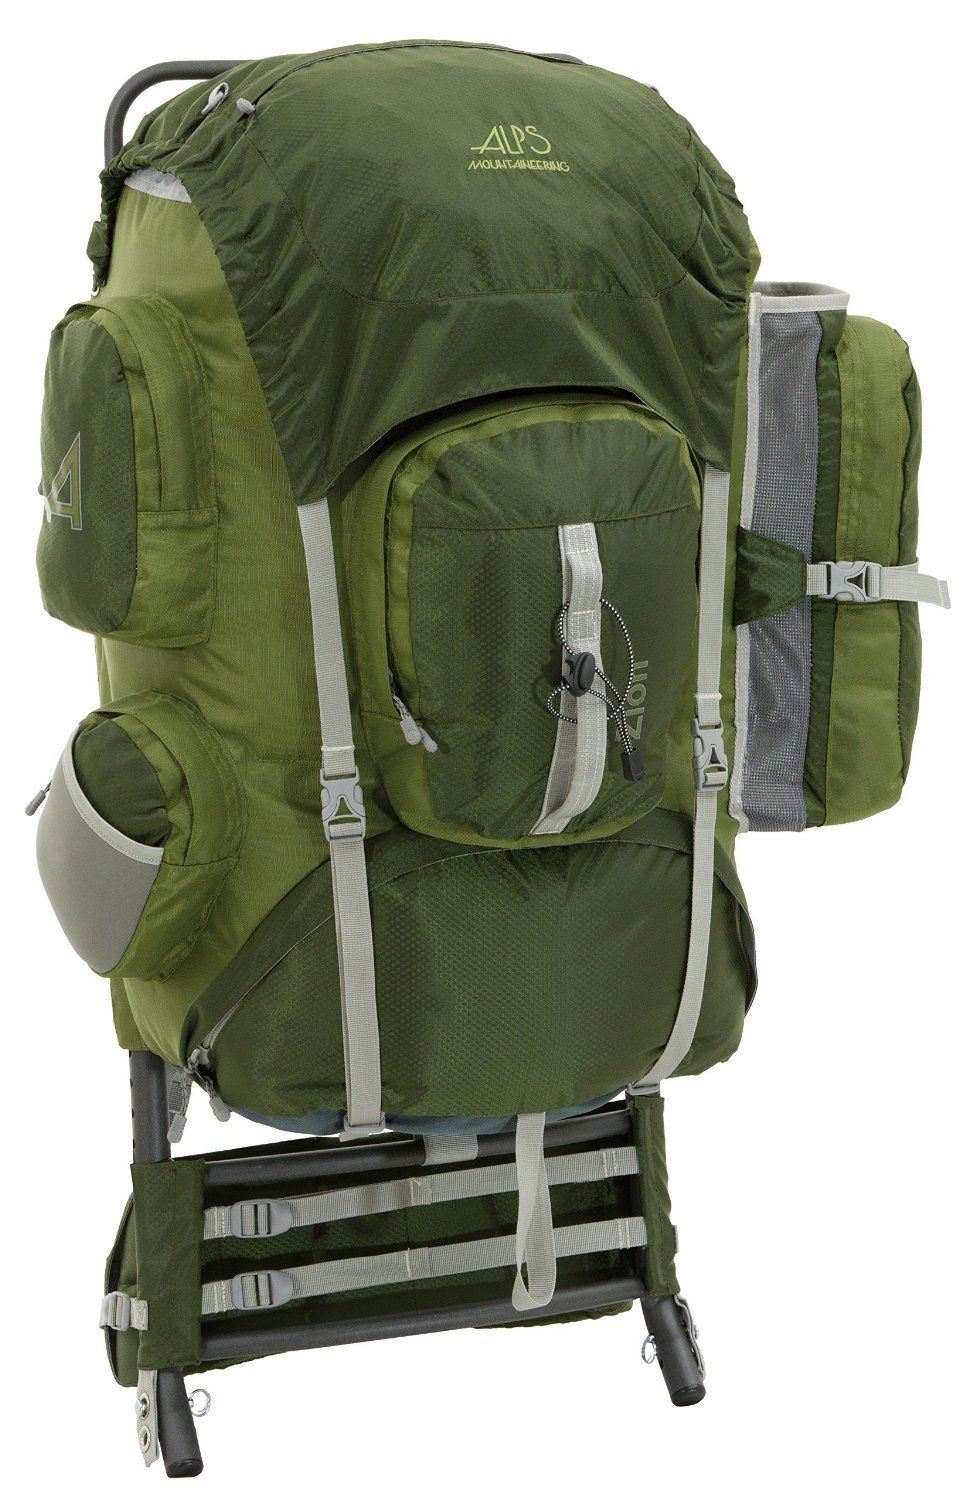 44d44384844 ALPS Mountaineering Zion External Frame Pack Sale 50%. Now only  93.95